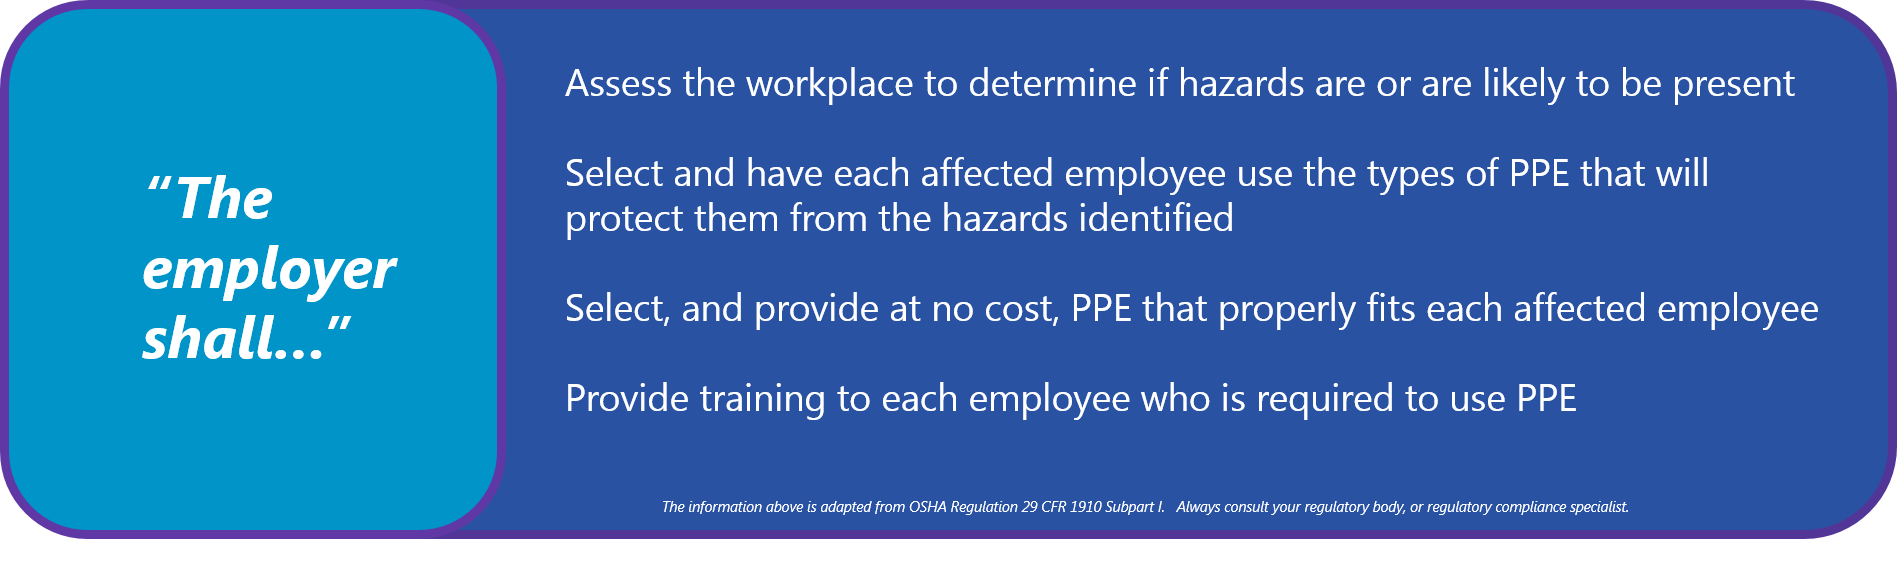 PPE Employer Duties-1.png